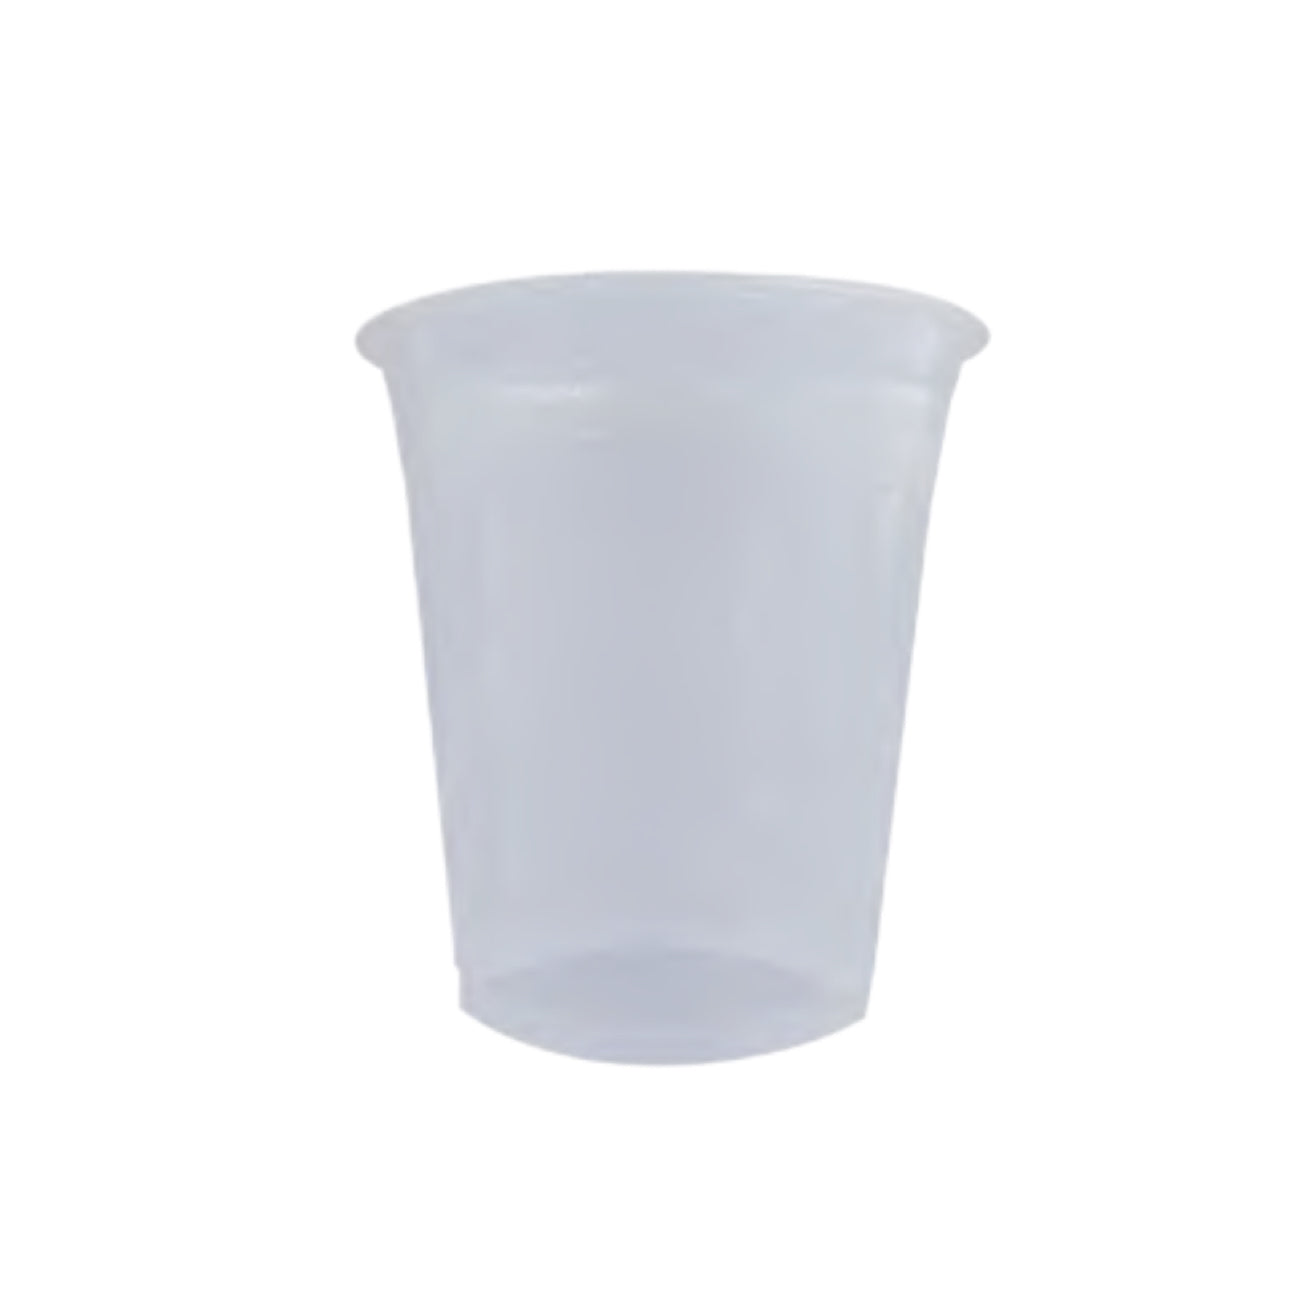 Vaso transparente desechable biodegradable 50 piezas 7oz